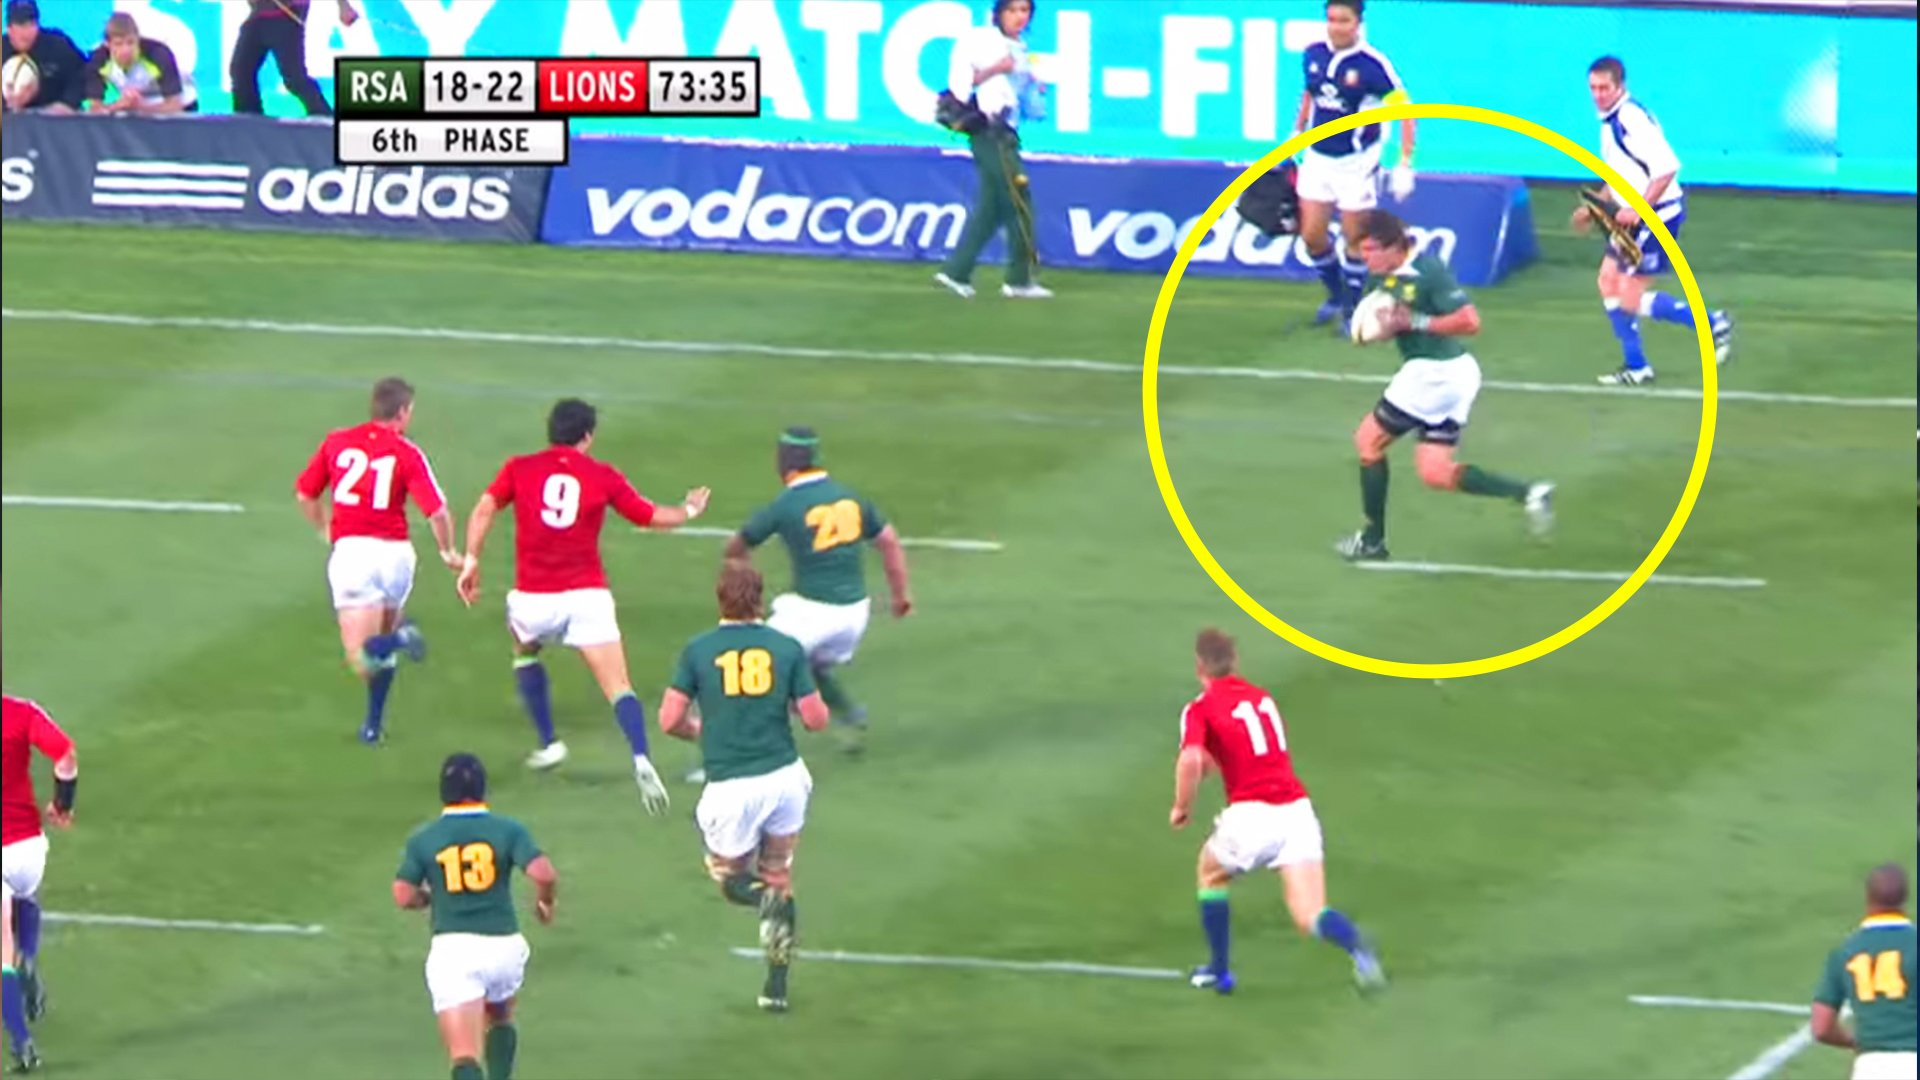 The single greatest solo finish in rugby history